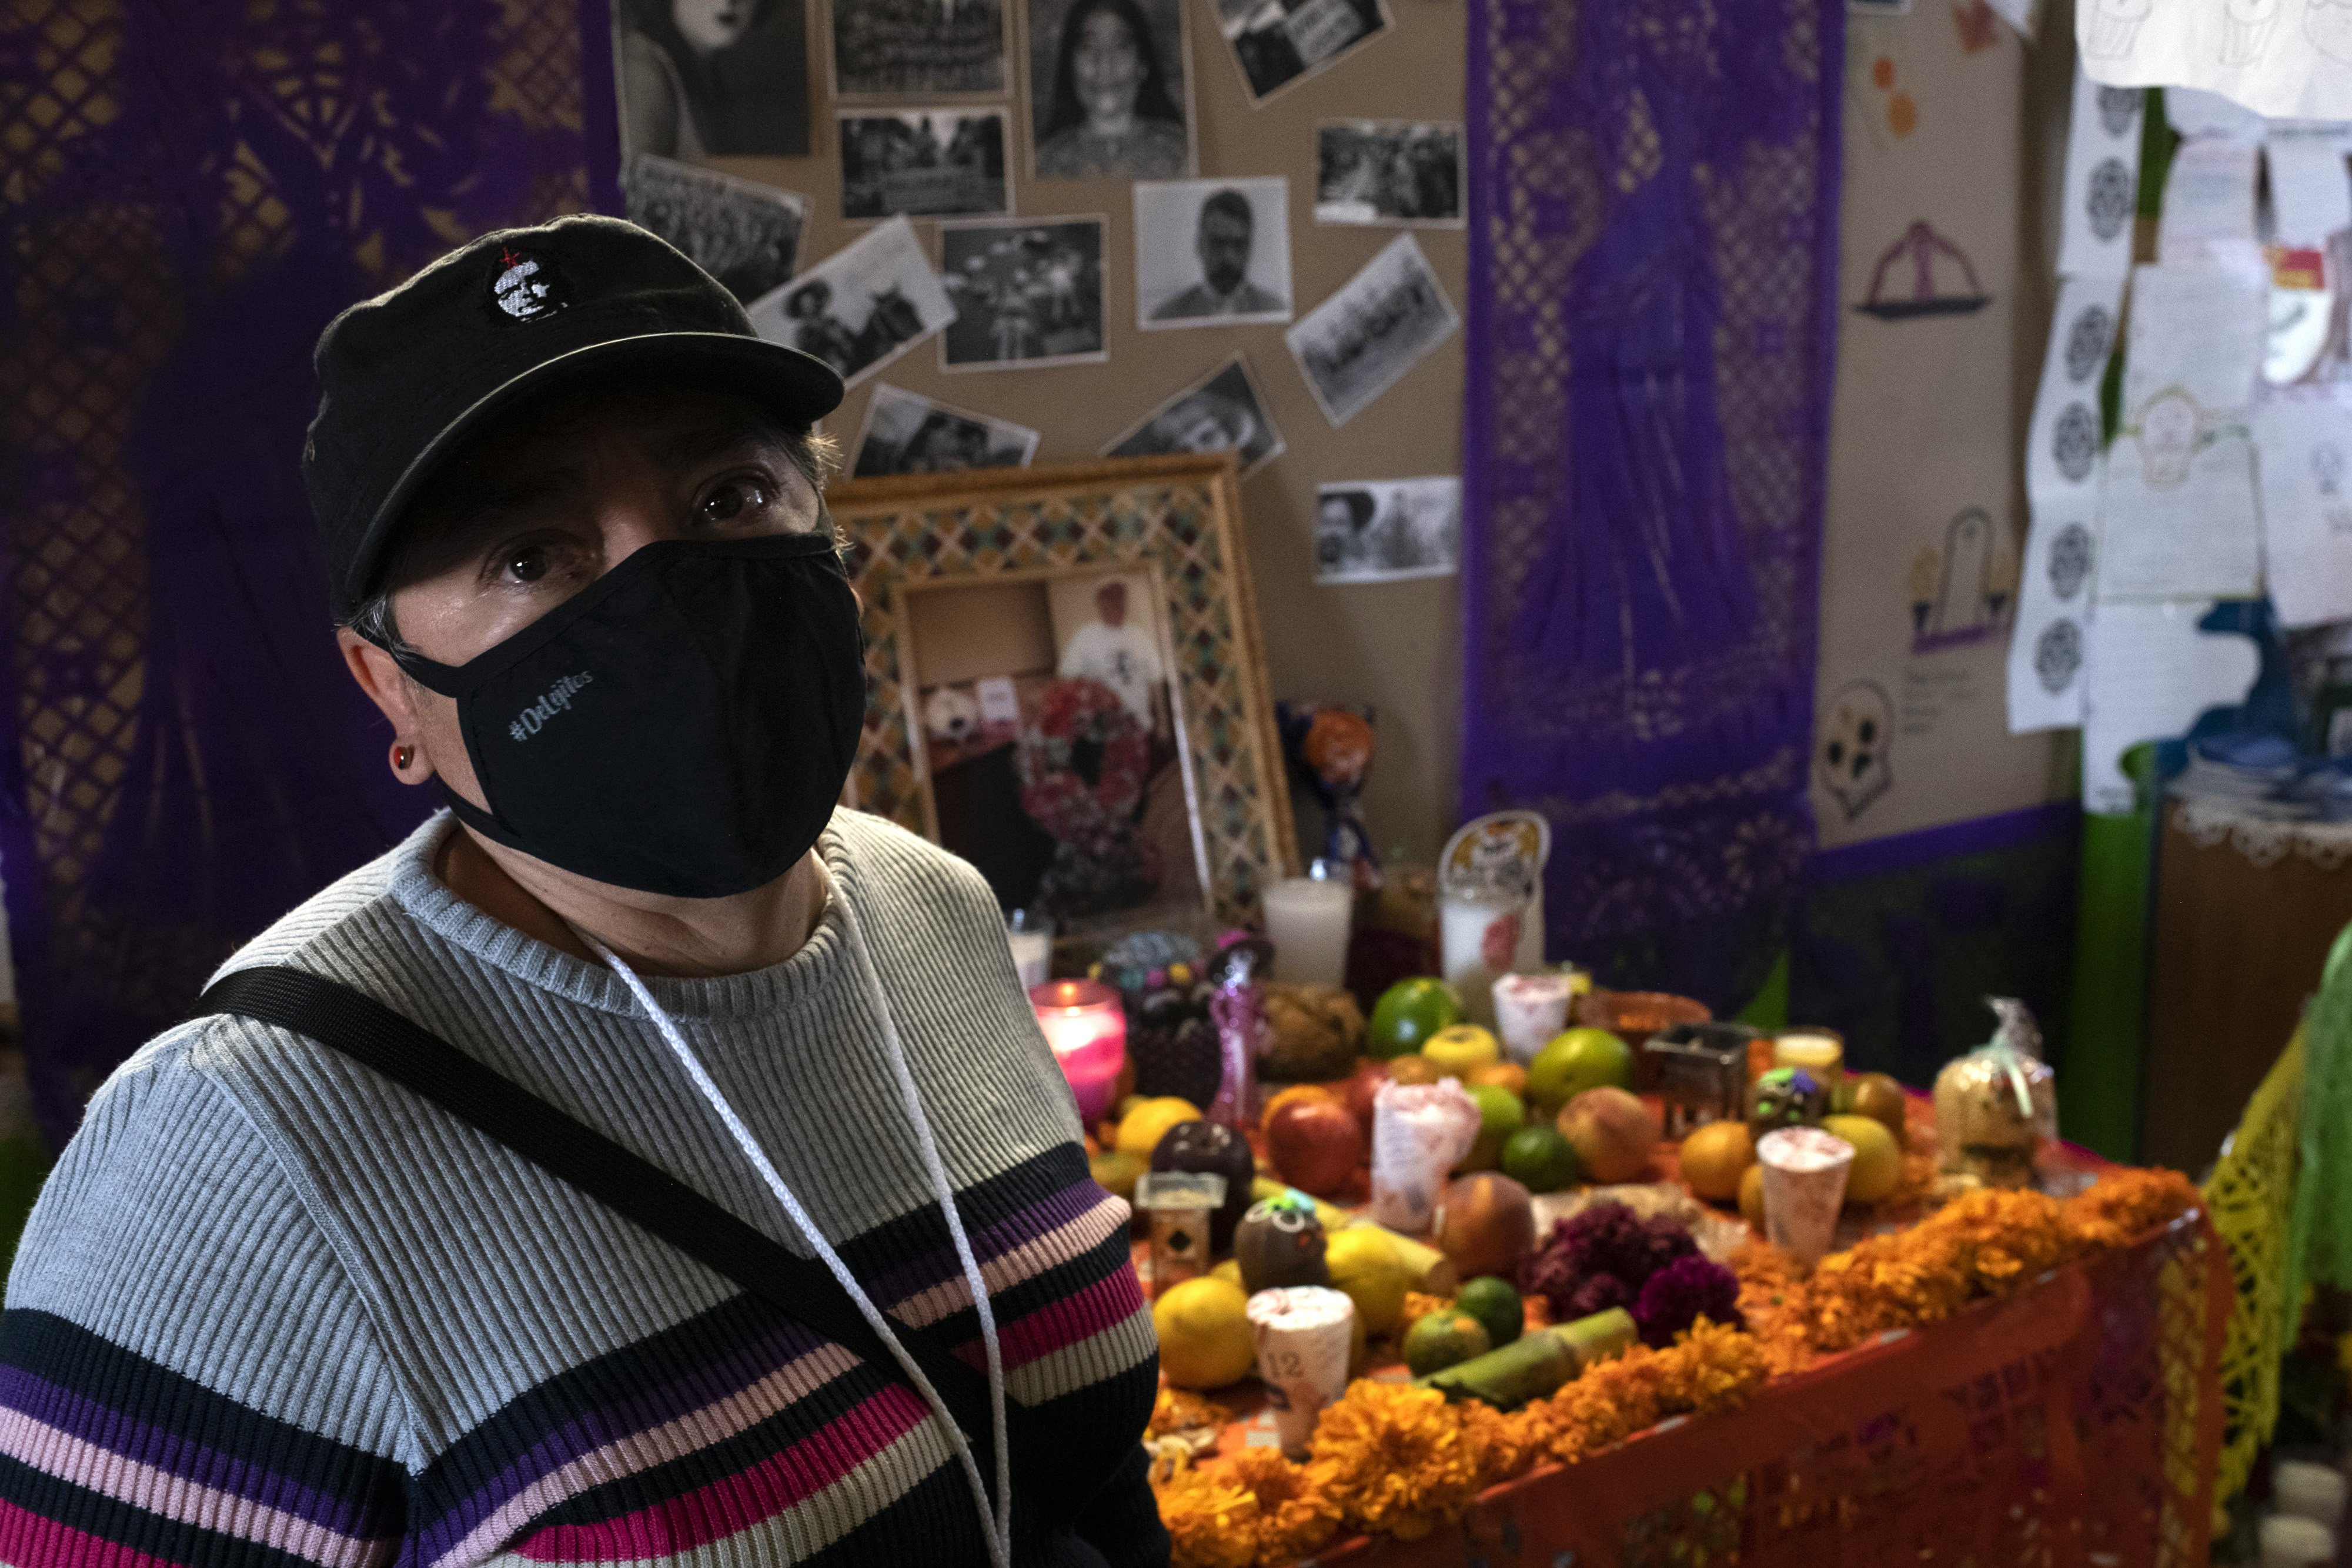 Elvira Madrid Romero in front of the offering for Jaime Alberto Montejo, who founded the organisation Brigada Callejera, which supports female sex workers